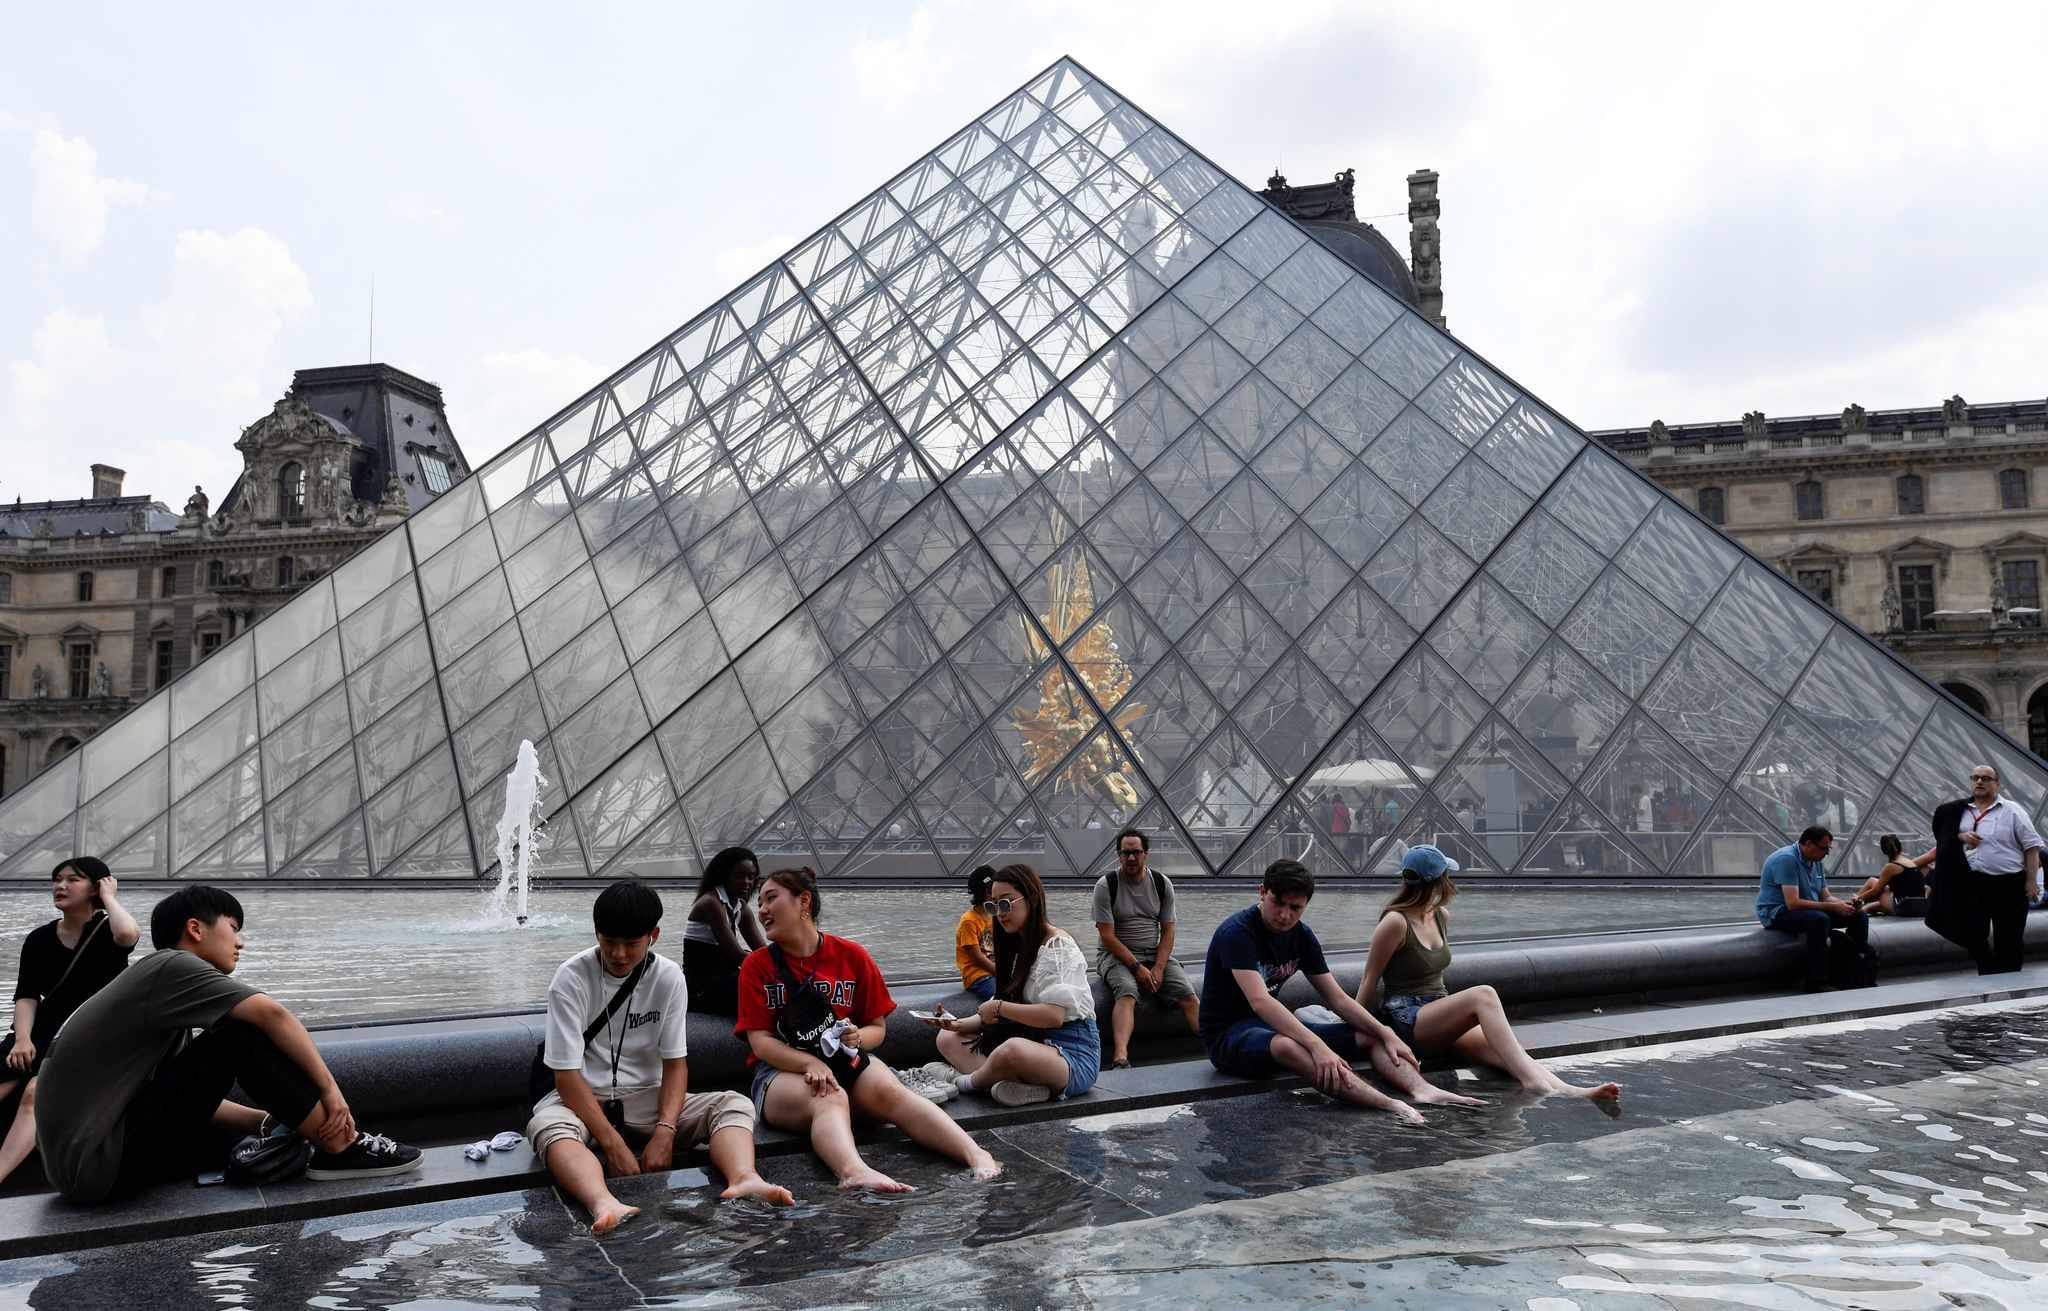 People cool themselves at the fountain of the Louvre Pyramid in Paris on July 25, 2018, as a heatwave continues across northern Europe, with wildfires breaking out in northern Scandanavia and Greece.